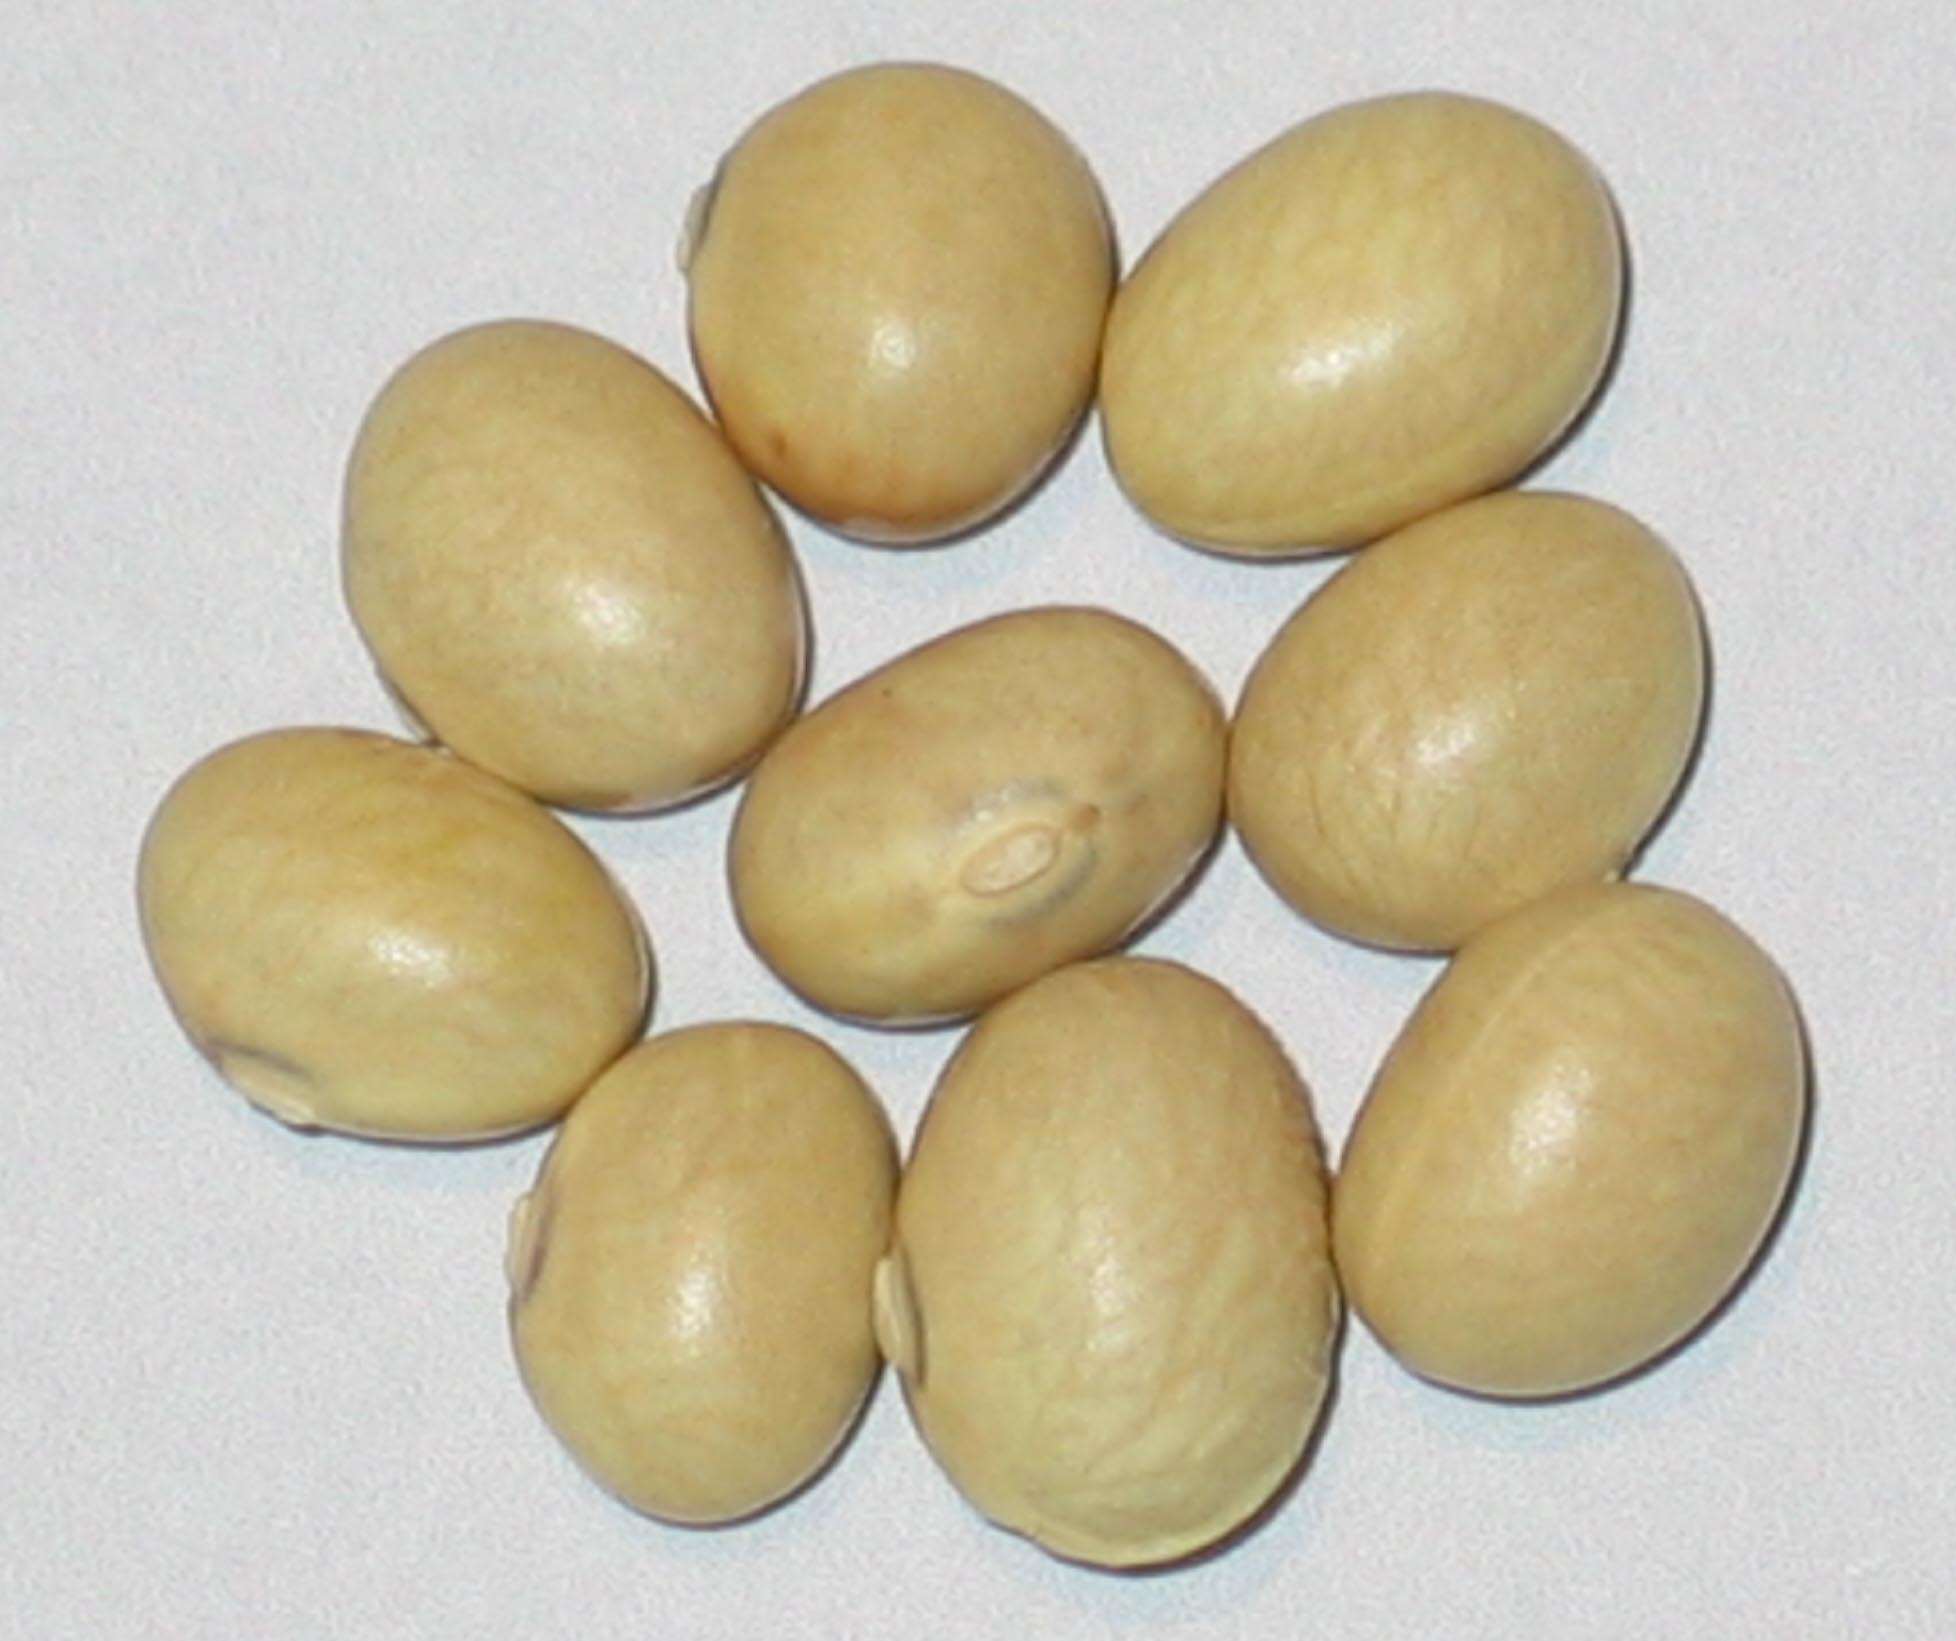 image of China Yellow beans